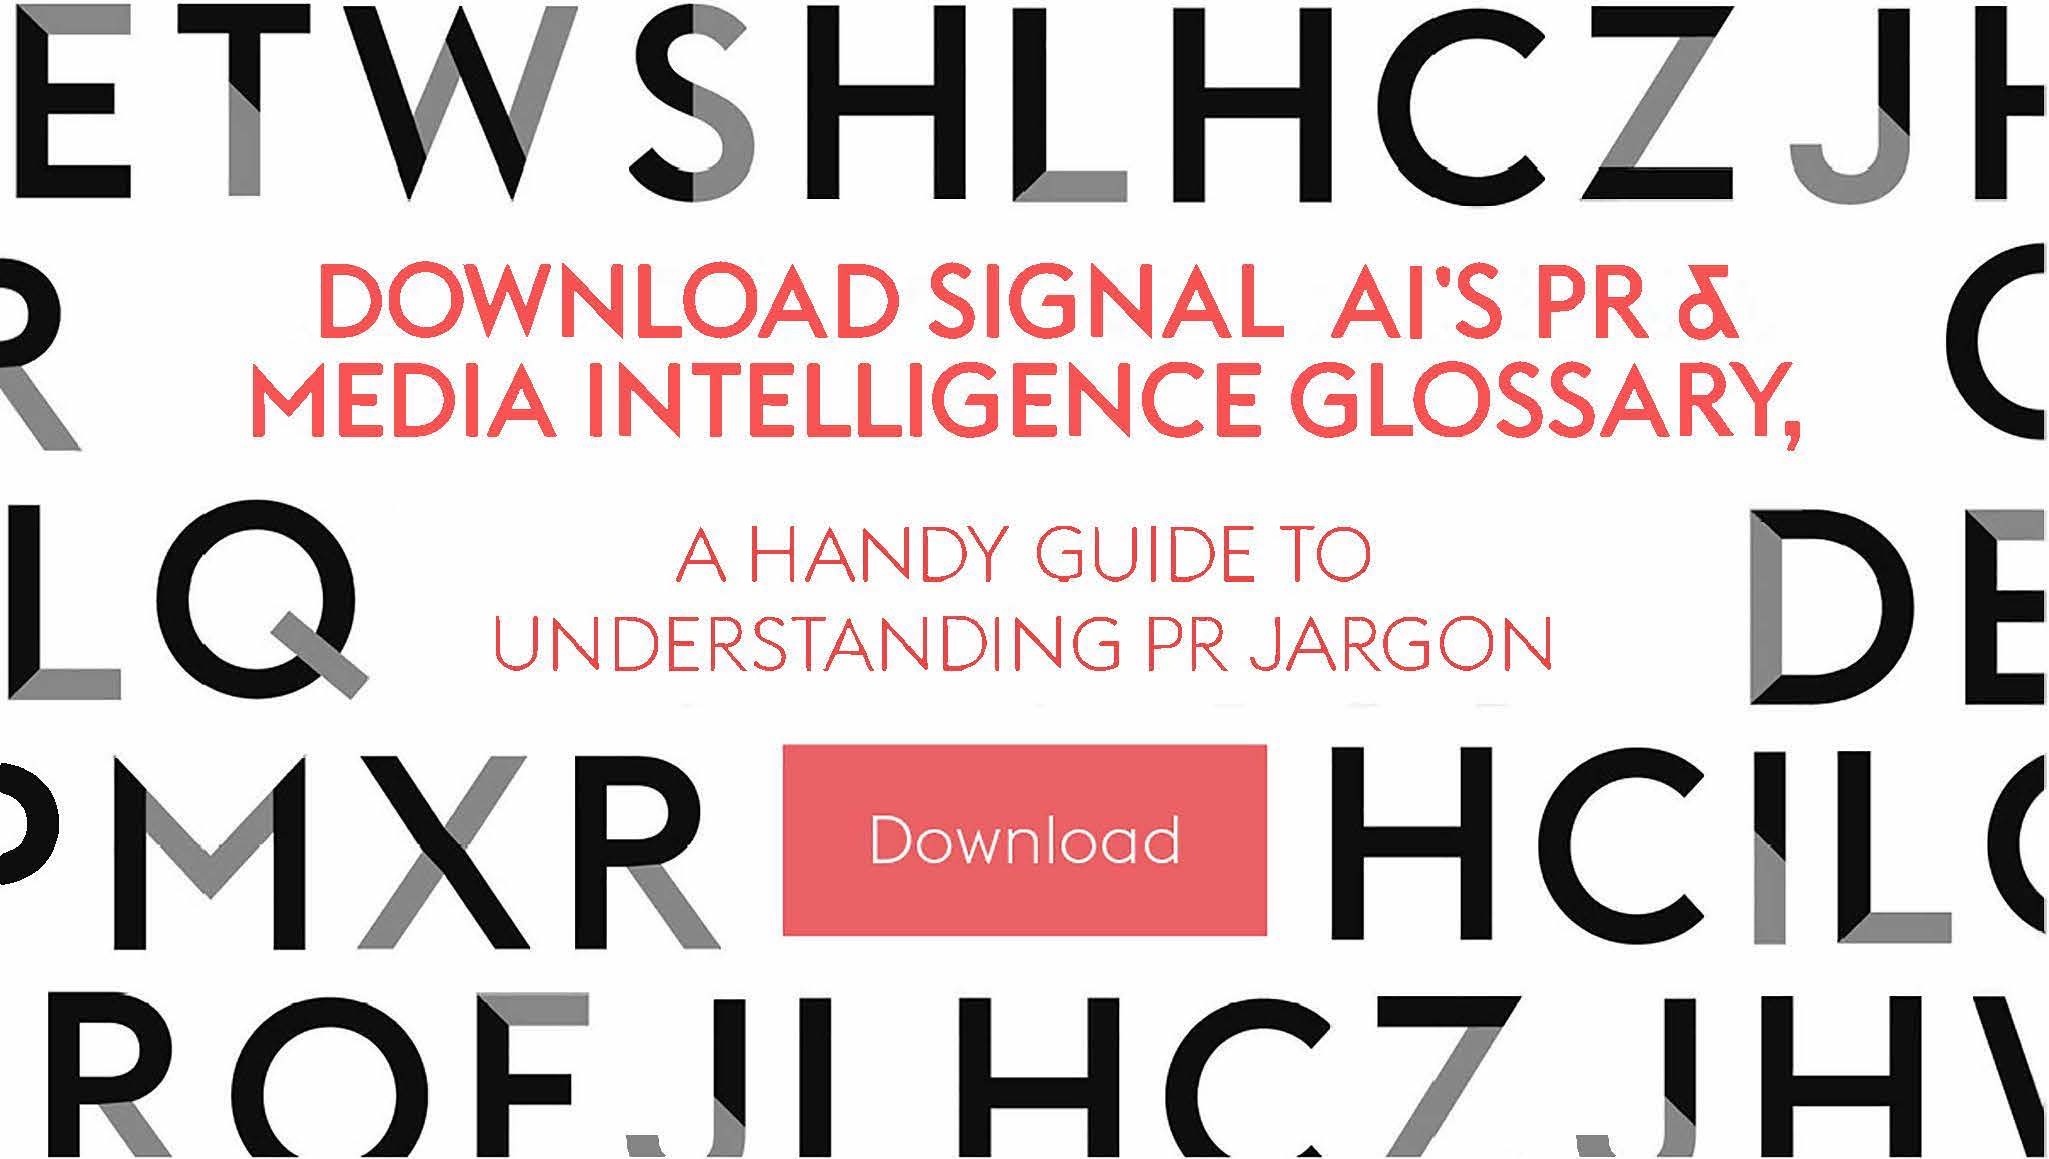 CTA Download for PR & Media Intelligence Glossary